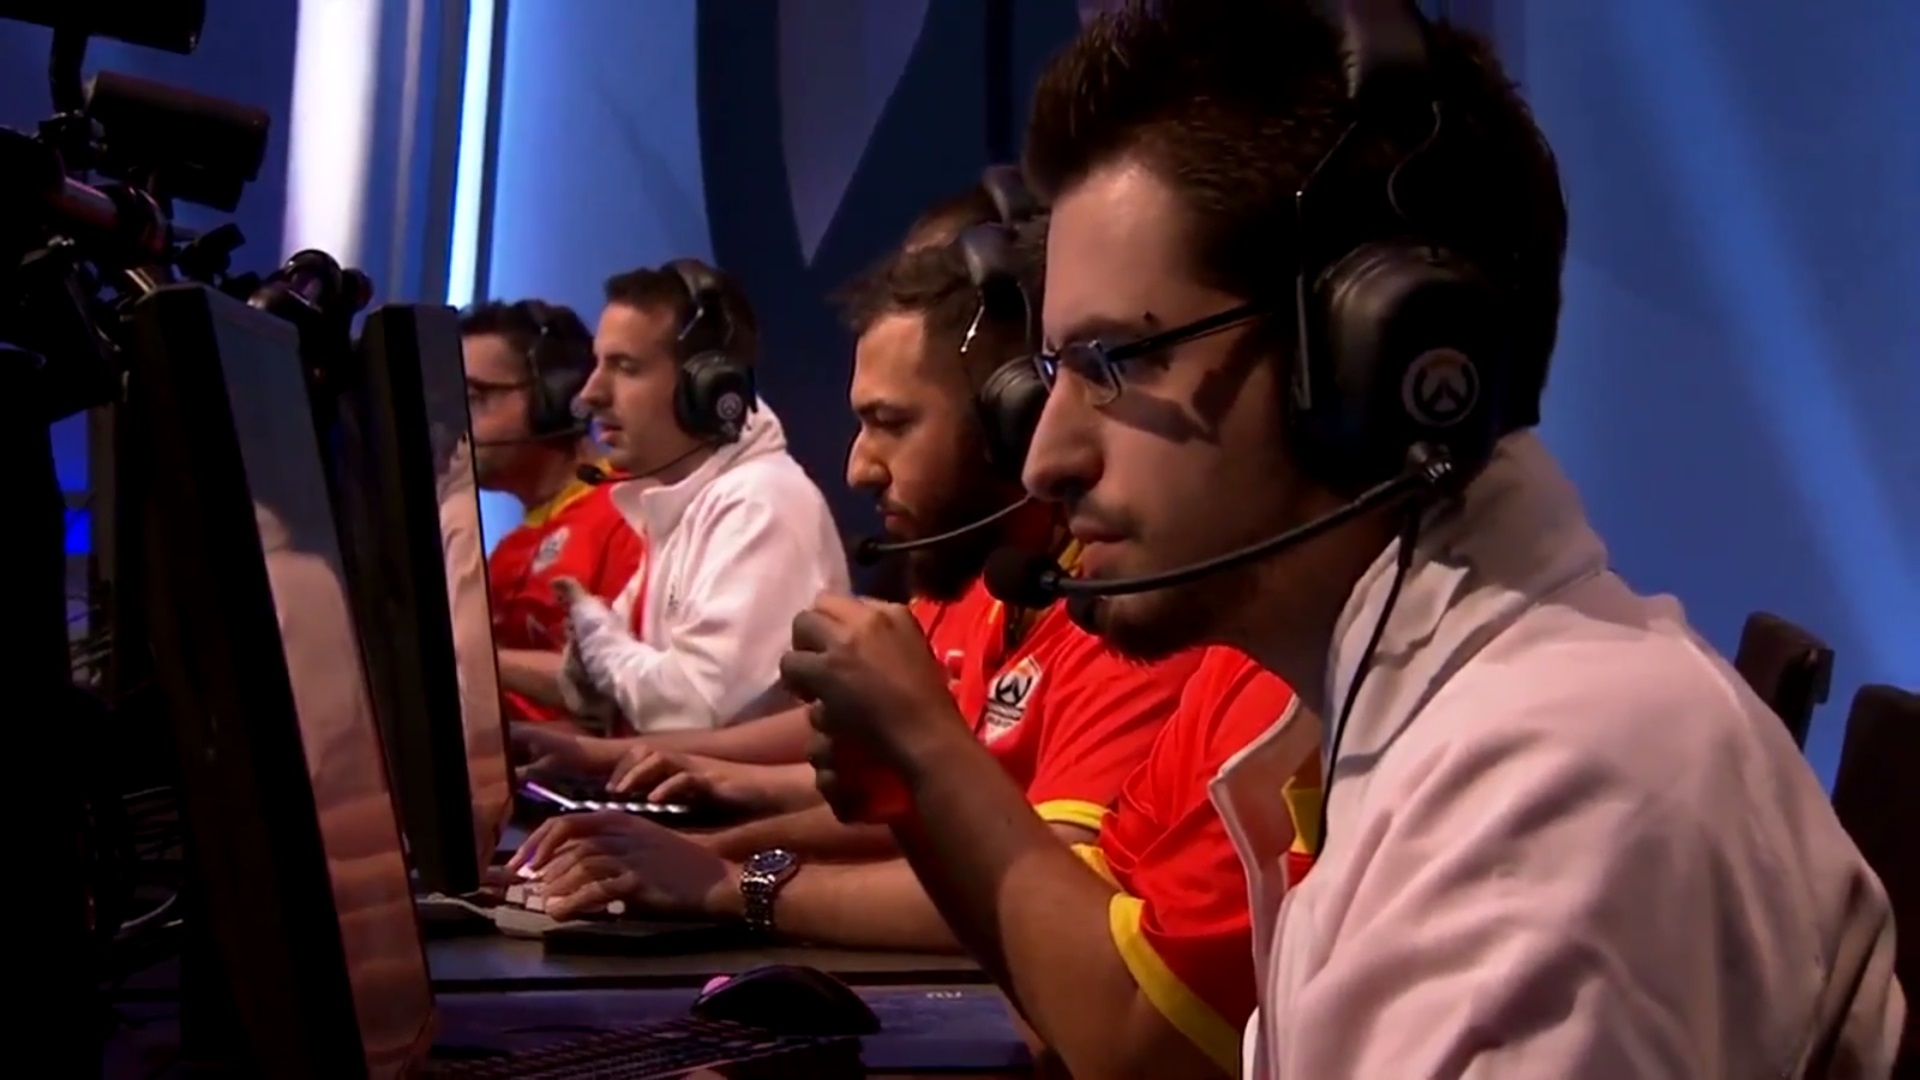 España Overwatch World Cup